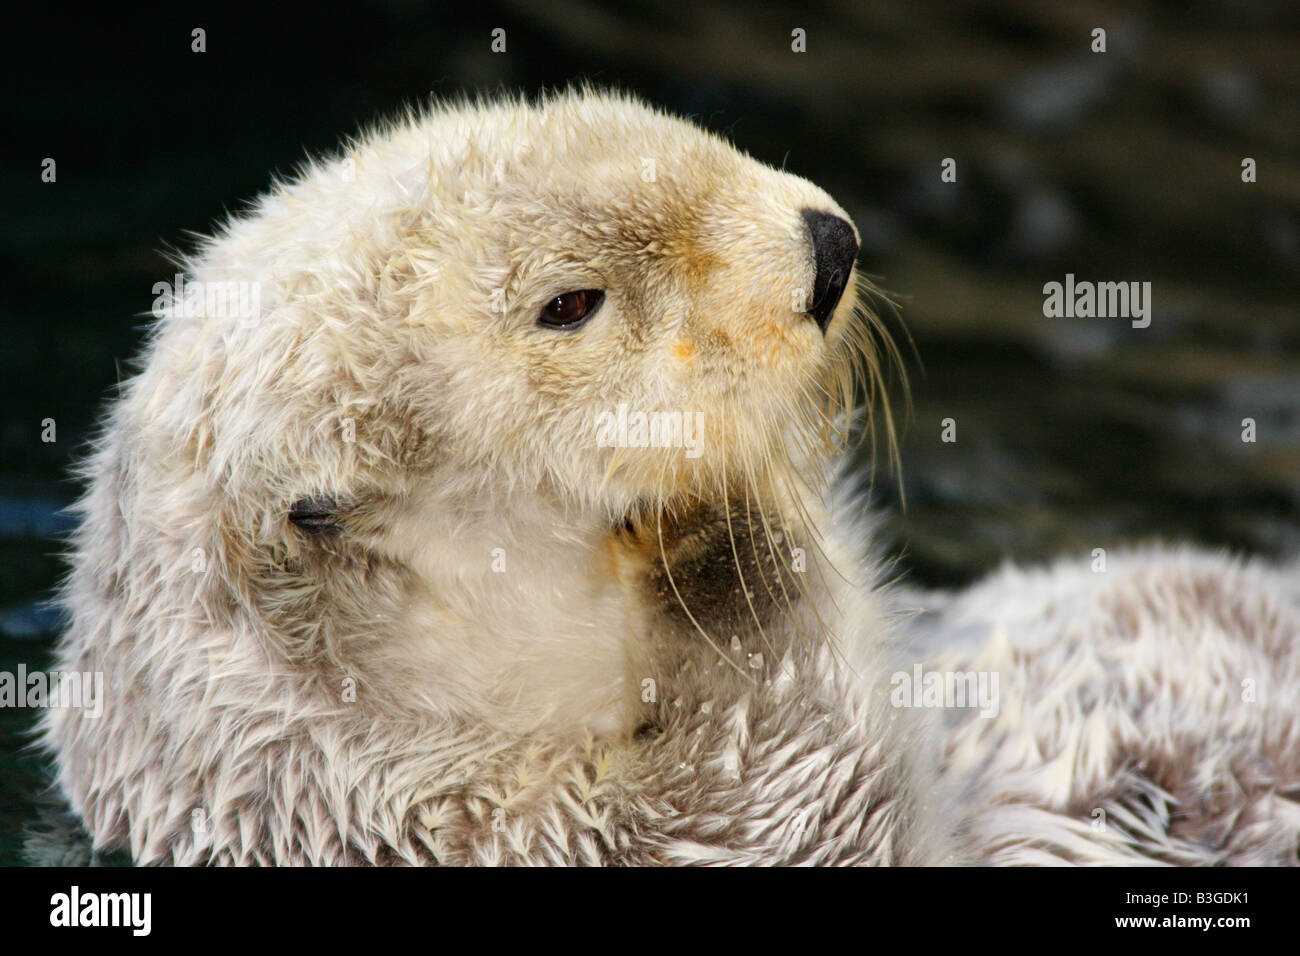 Sea otter grooming fur -Note Captive subject - Stock Image